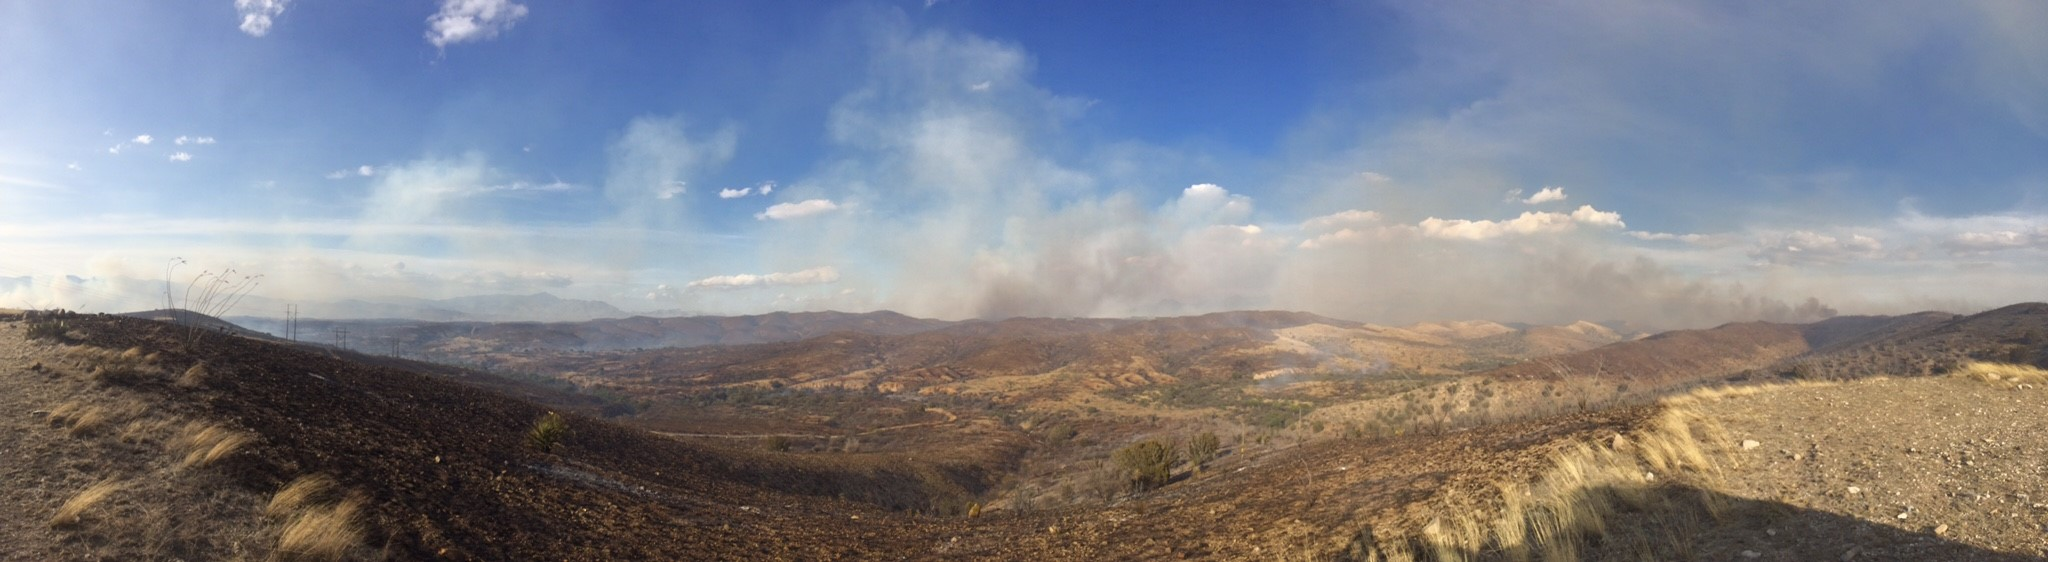 Image of Sawmill Fire, April 2017